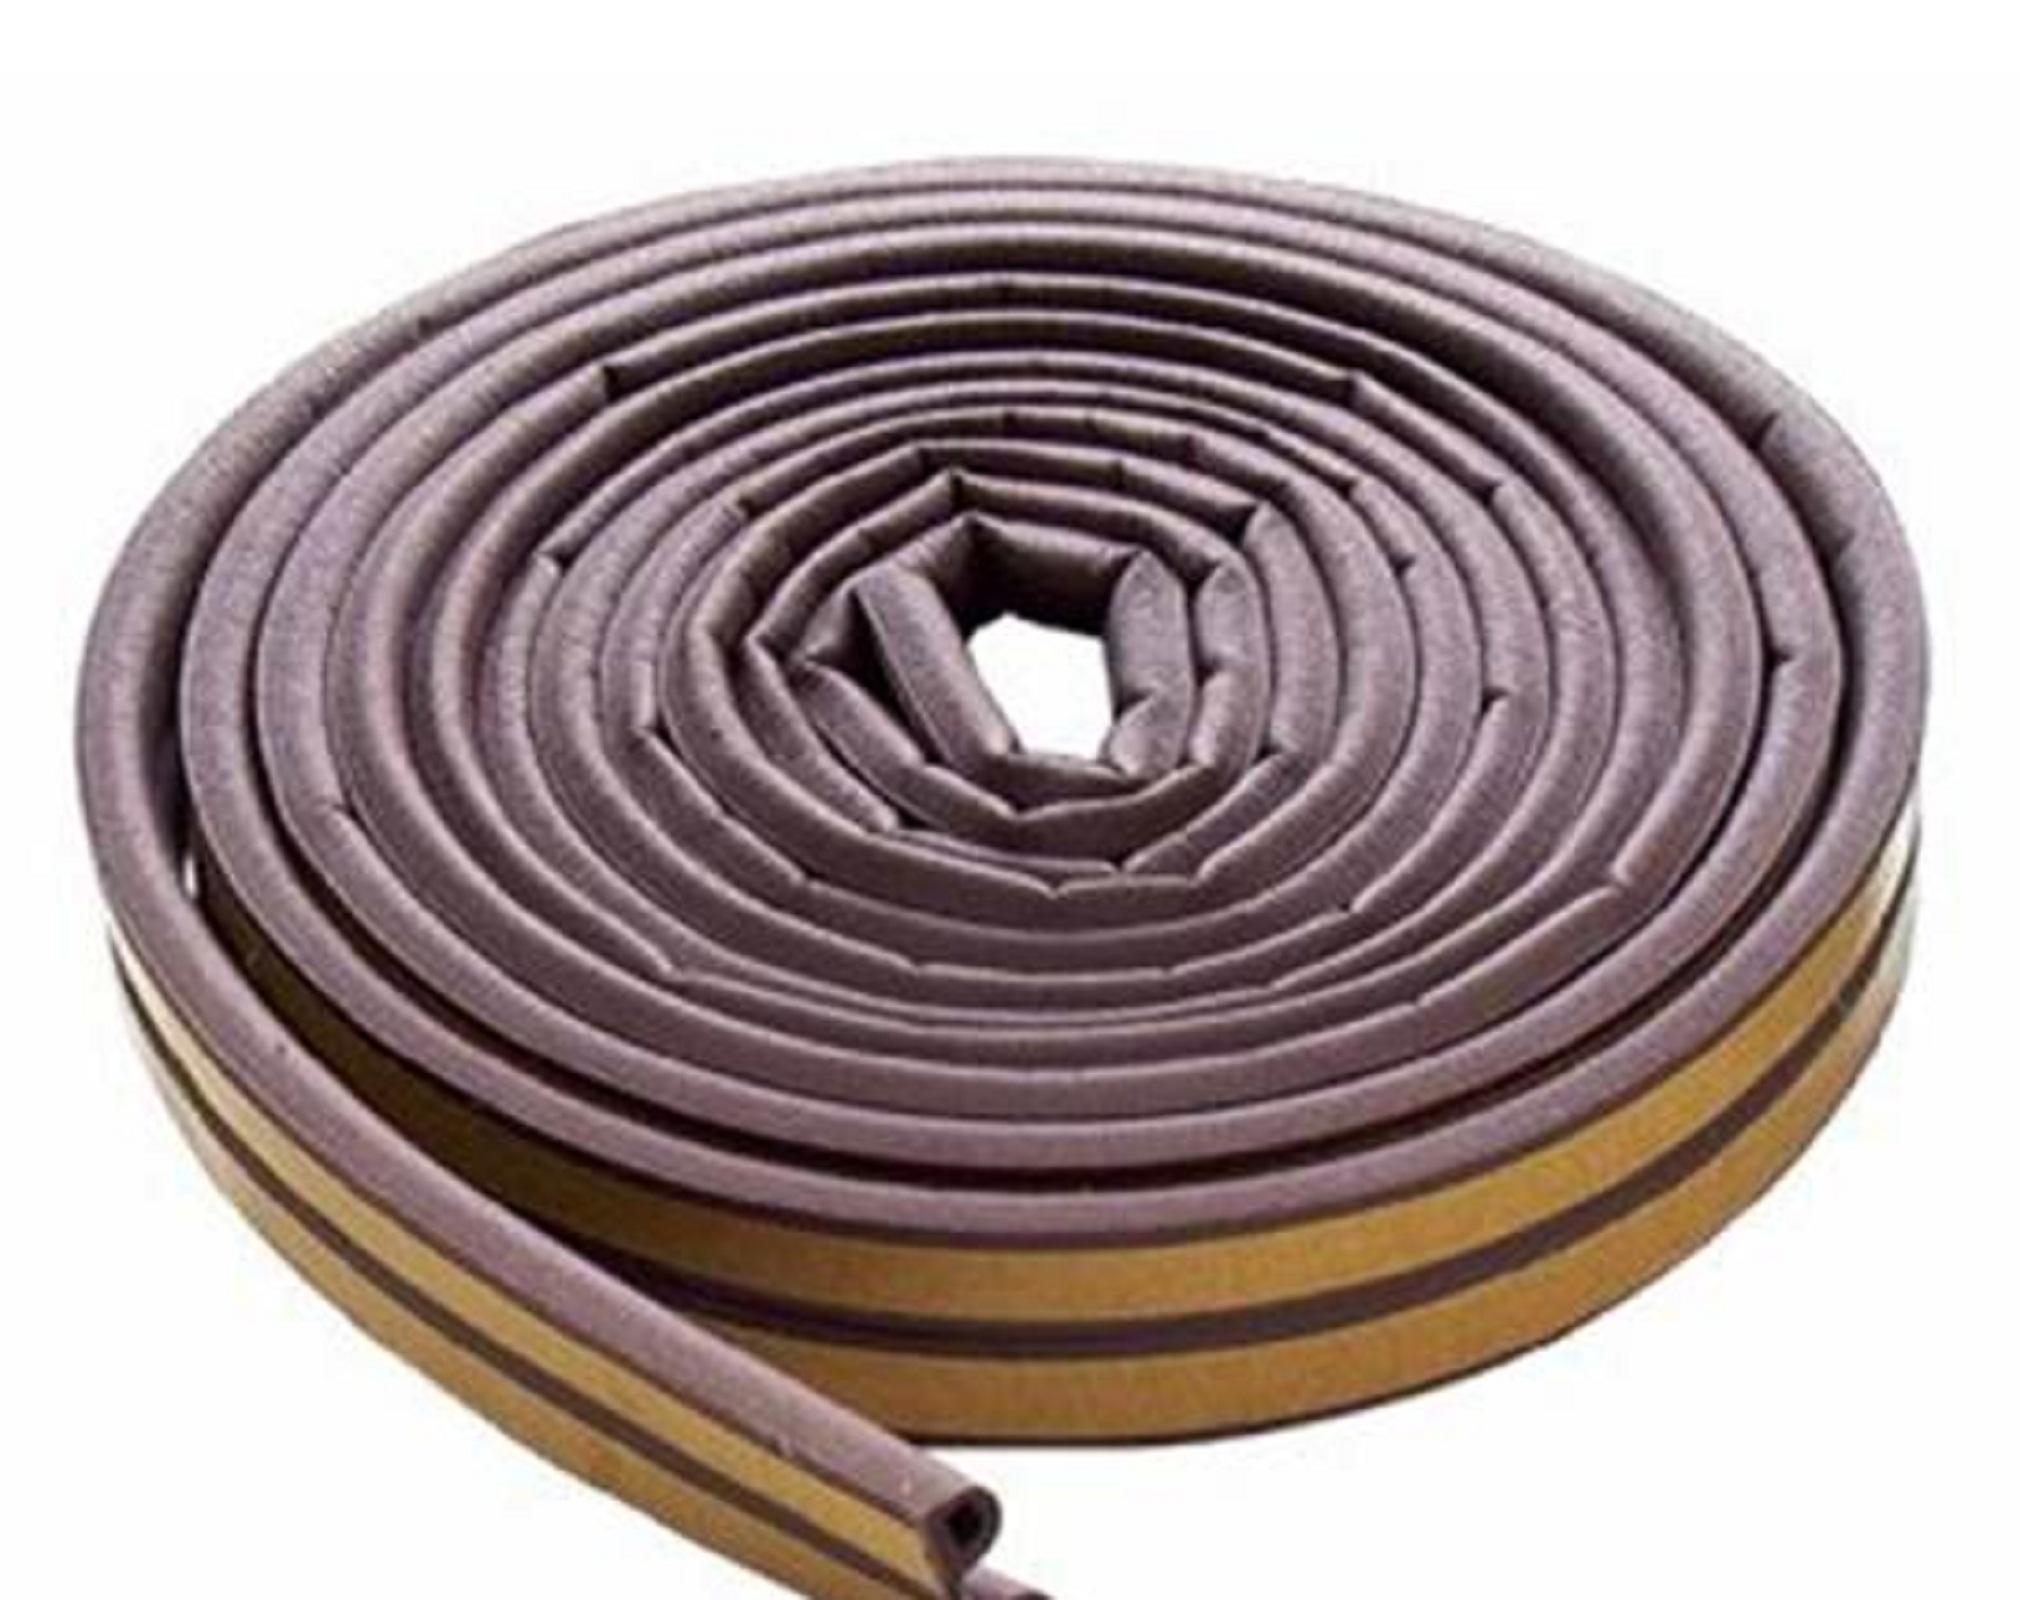 M-D Building Products 2550 All-Climate Edam Weatherstrip P Strip, 17 Feet, Brown at Sears.com